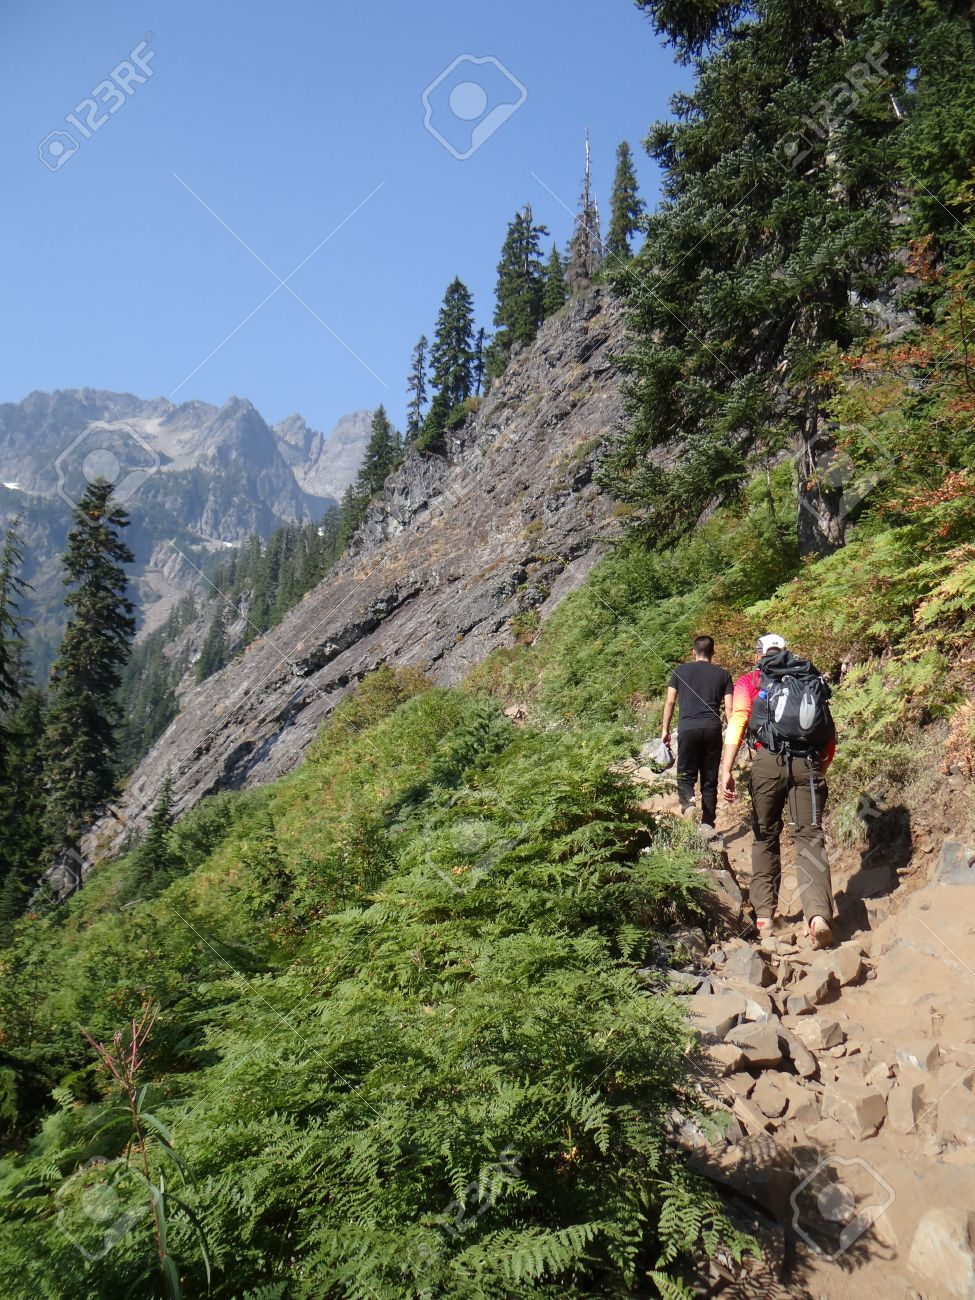 Hikers climbing steep mountain trail with switchbacks near Snoqualmie